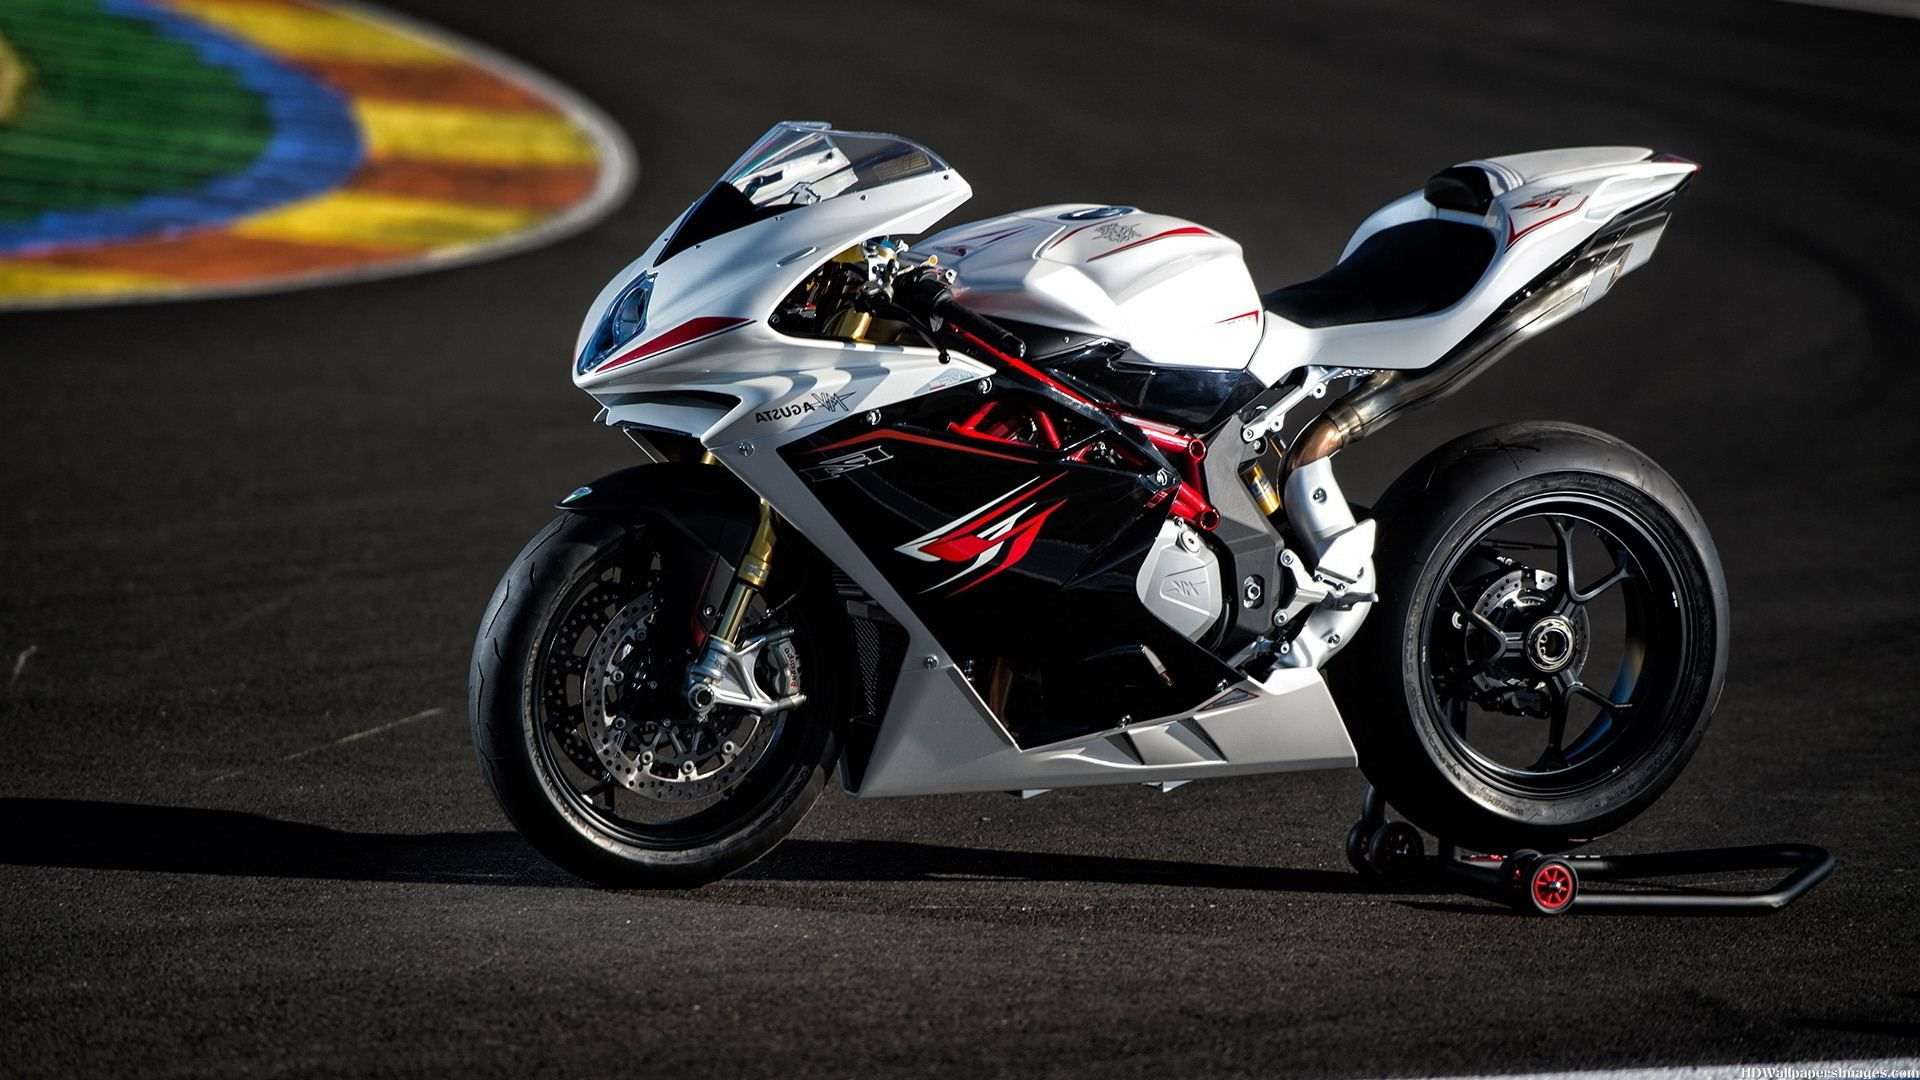 MV Agusta F4 CC Full hd wallpapers